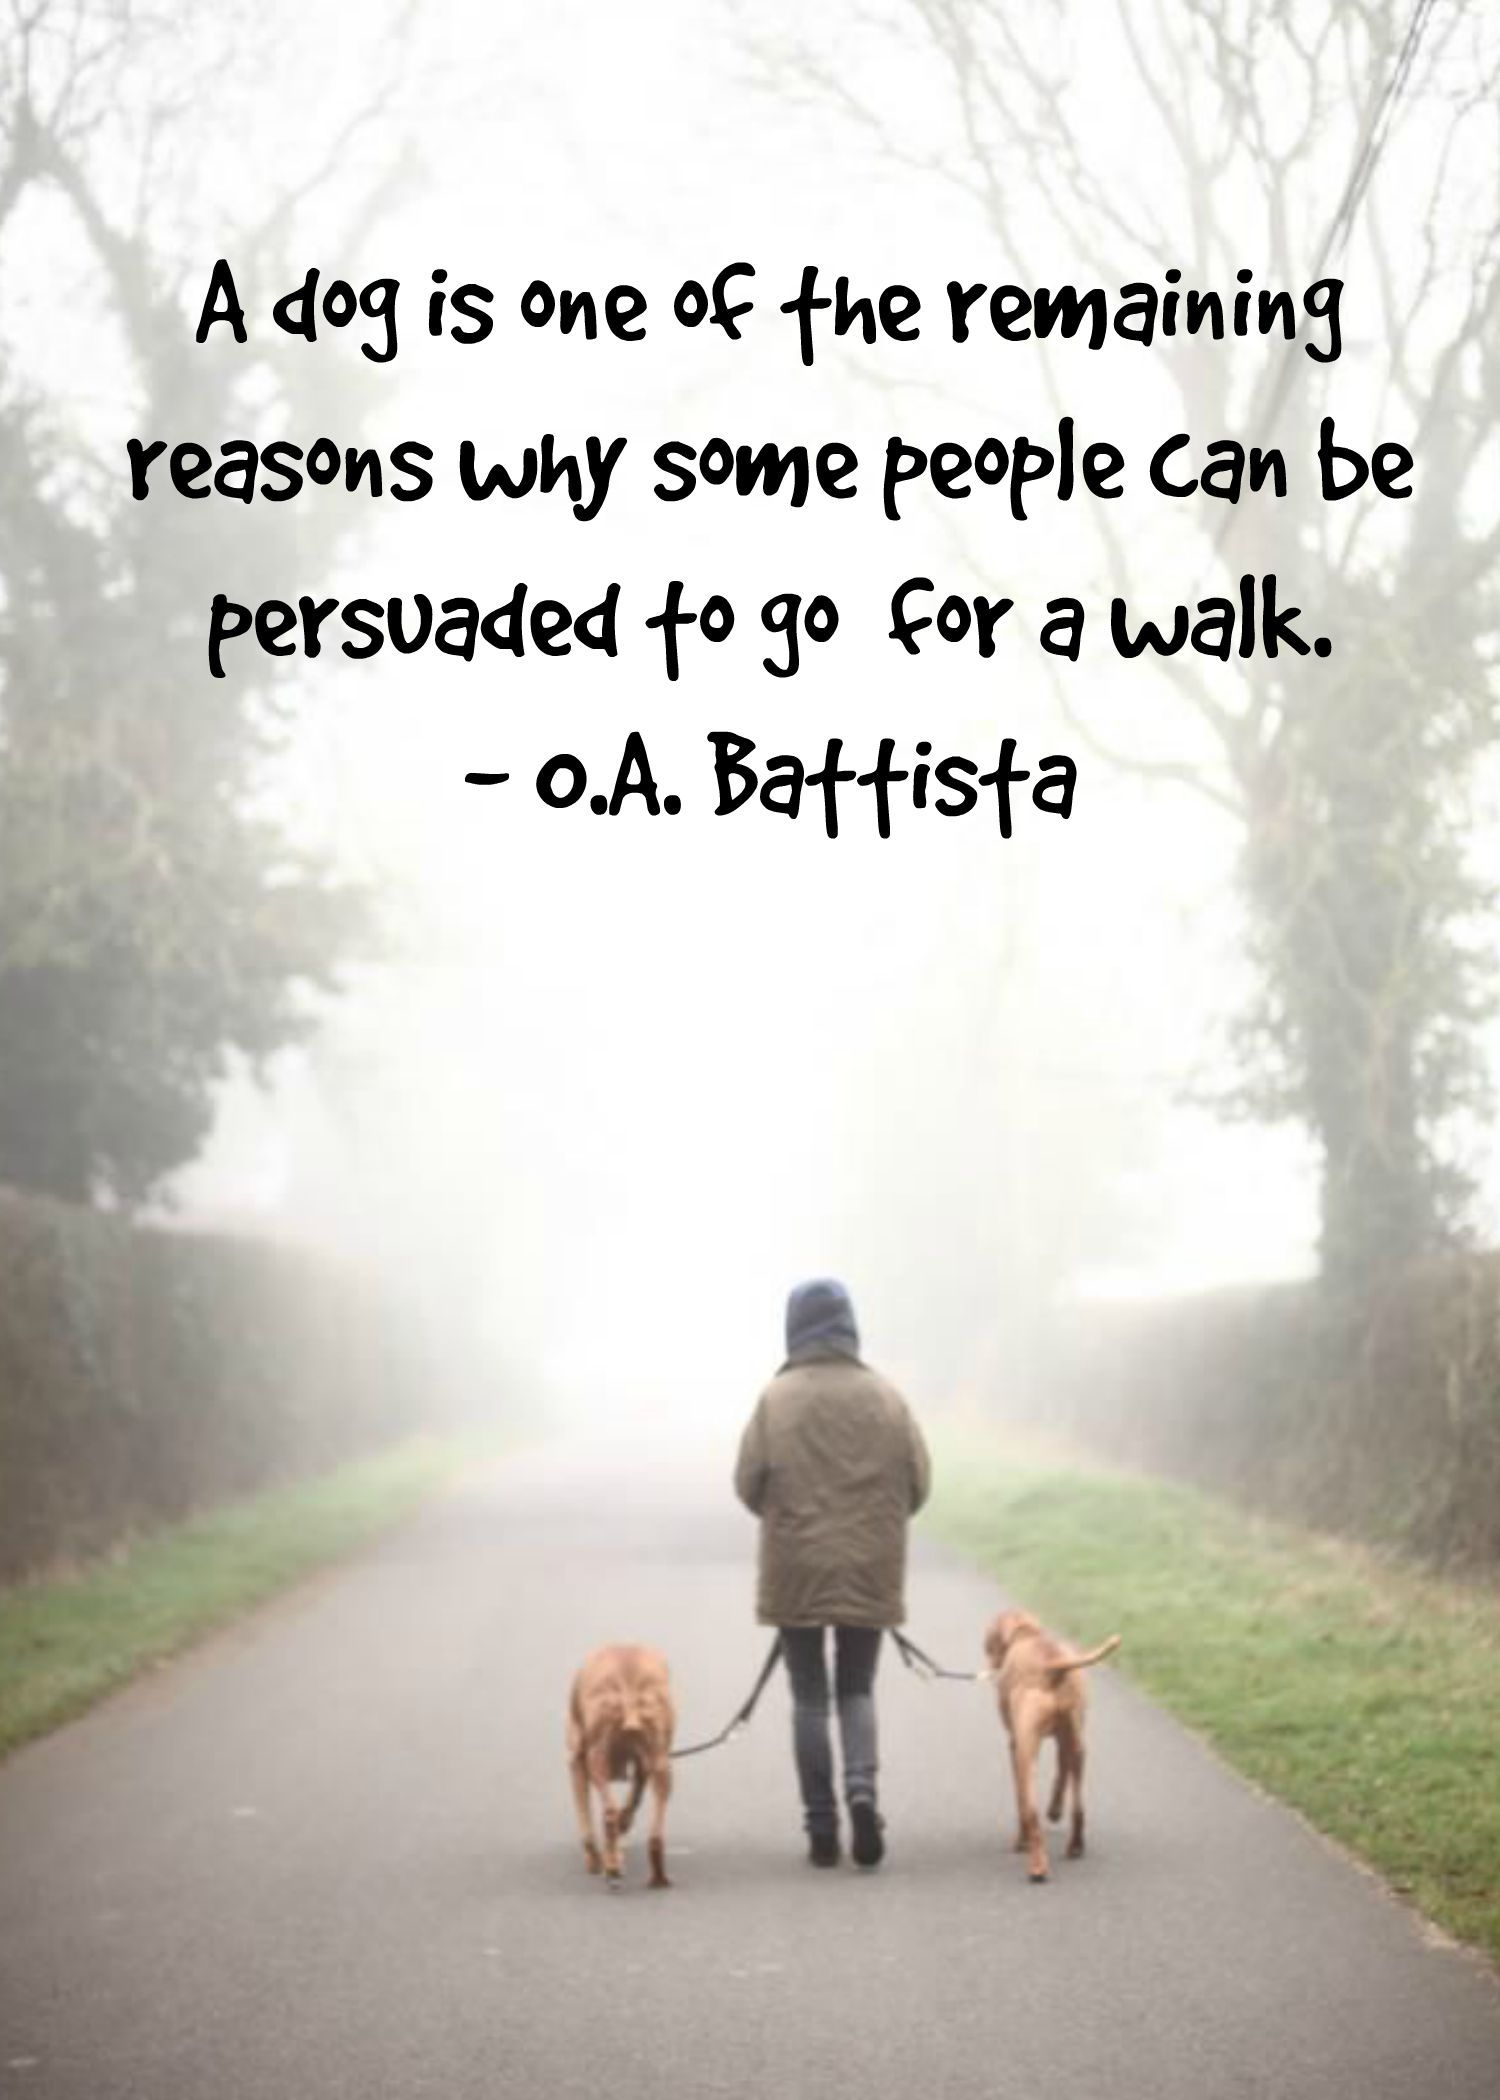 A Dog Is One Of The Remaining Reasons Dogs Quote Saying Www Fordogtrainers Com Dog Walking Quotes Dog Quotes Dog Walking